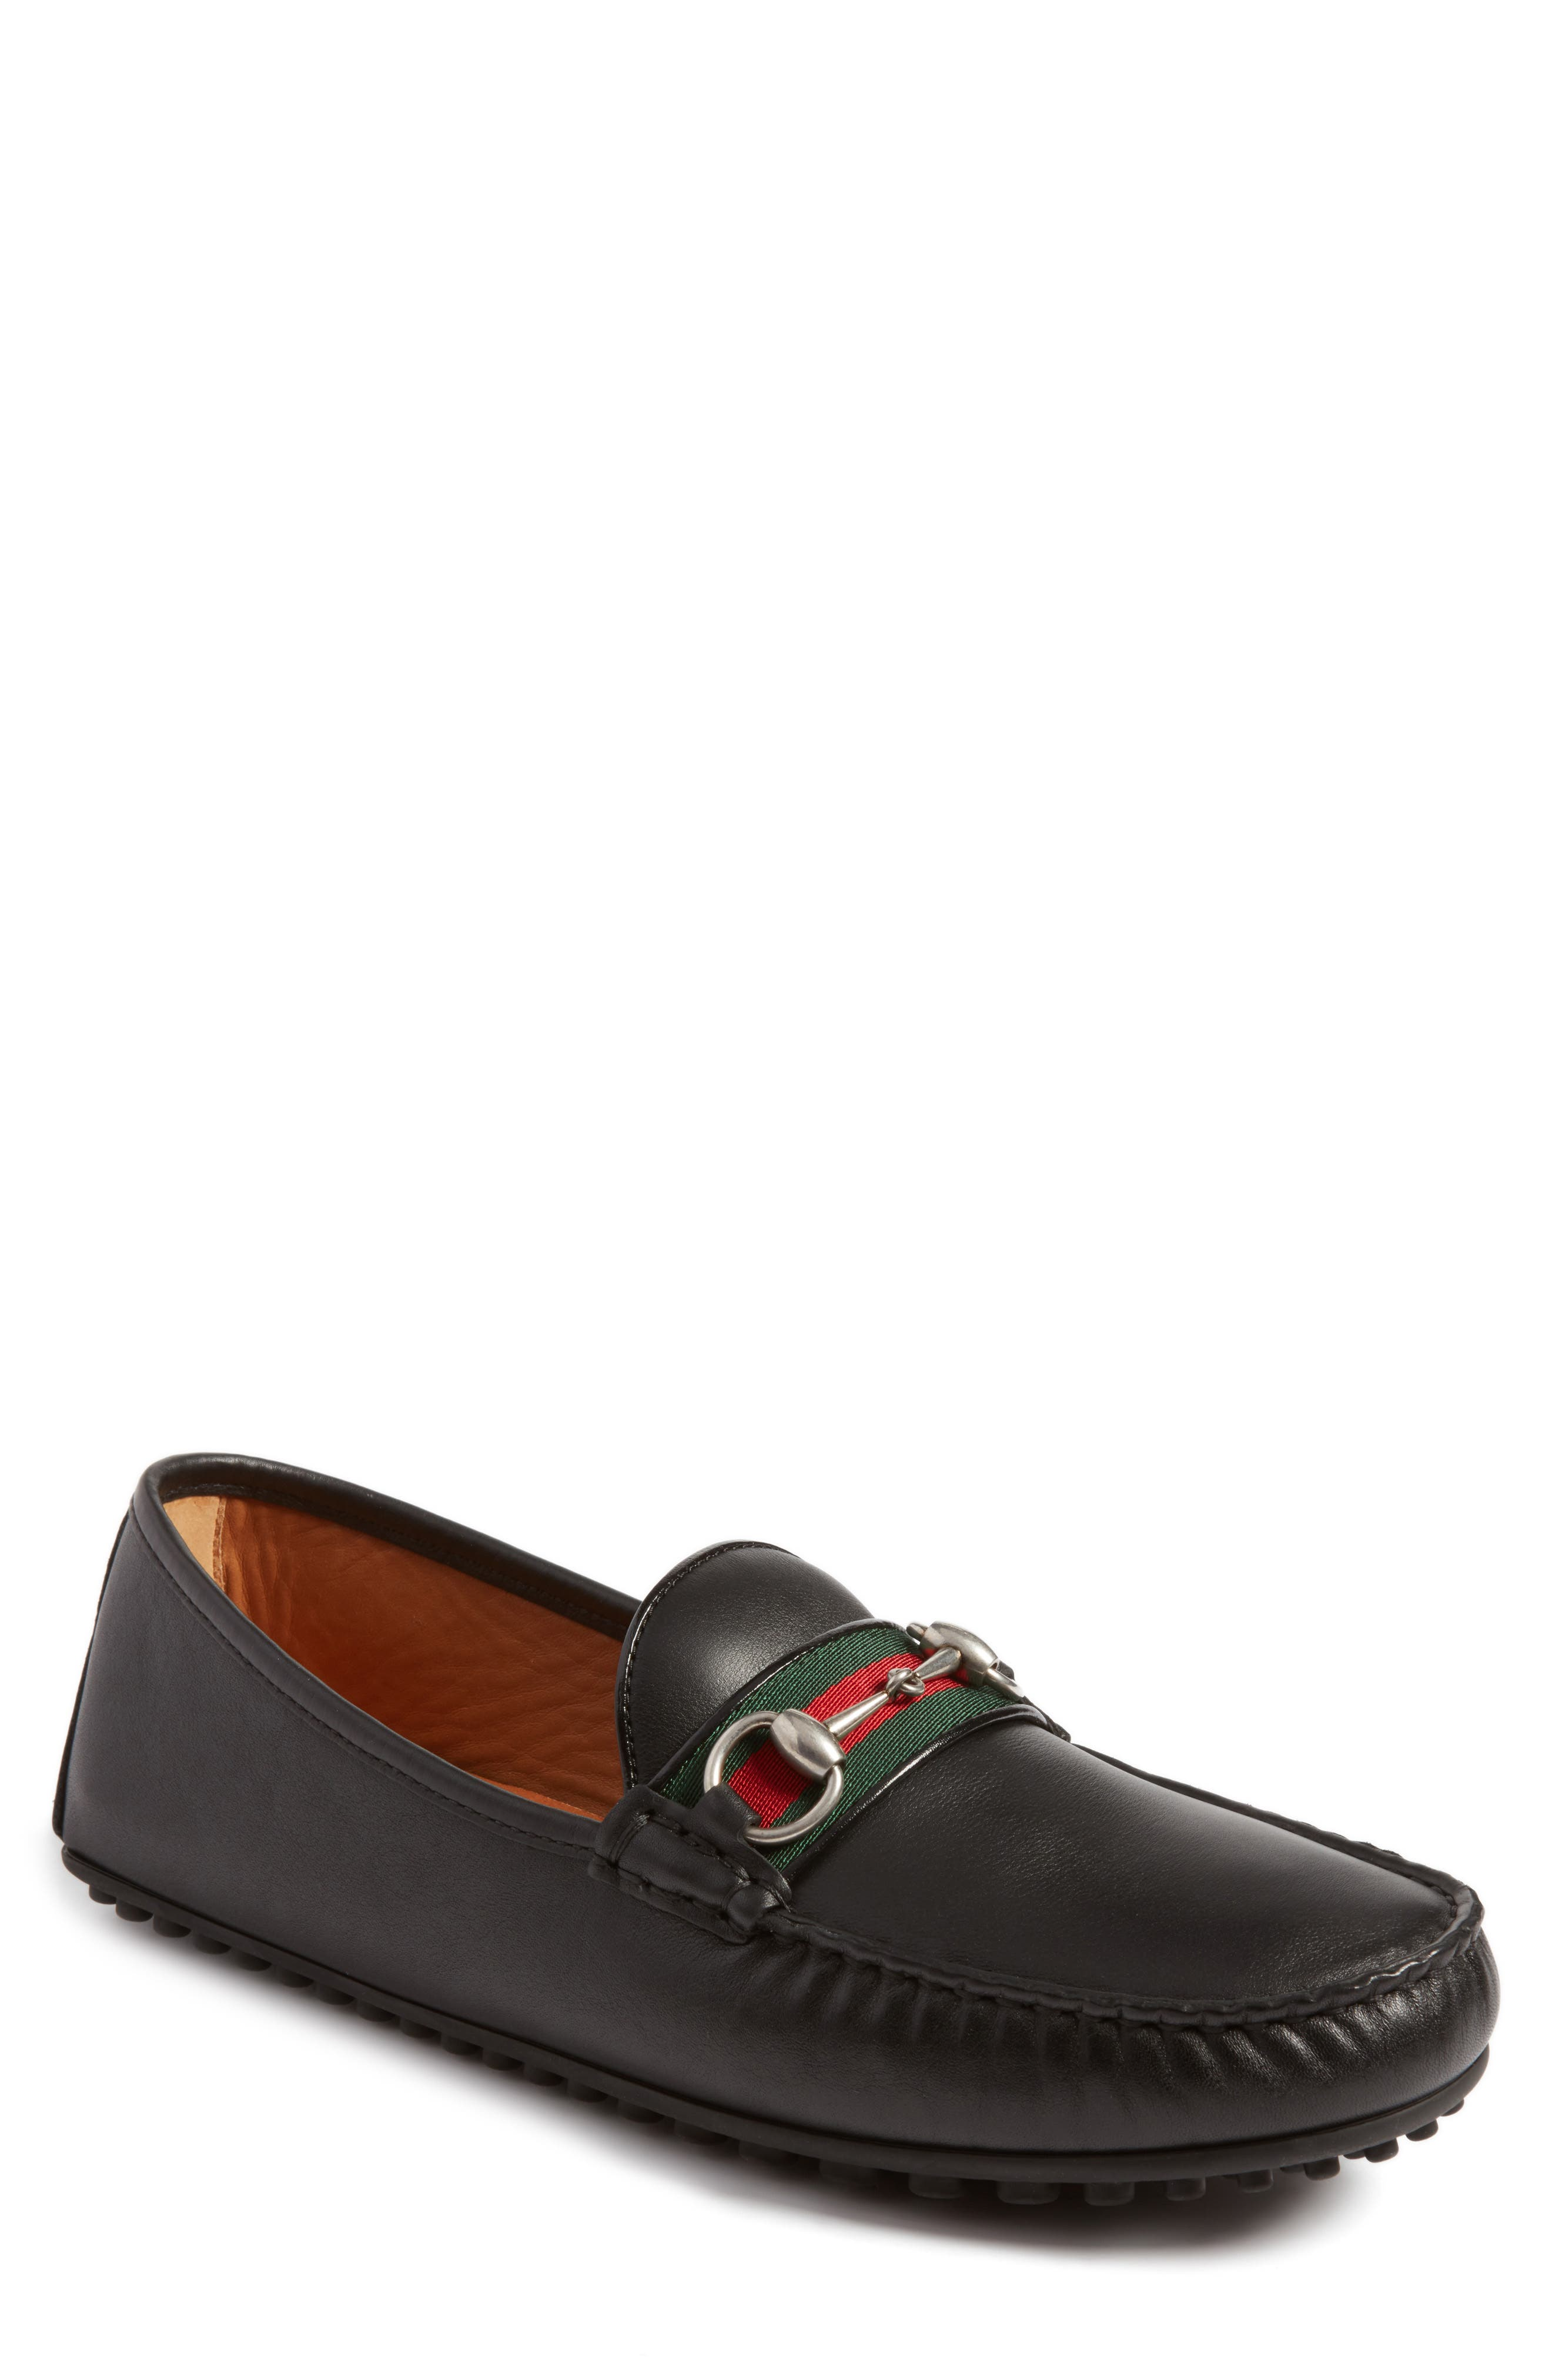 Kanye Bit Loafer,                             Main thumbnail 1, color,                             NERO LEATHER